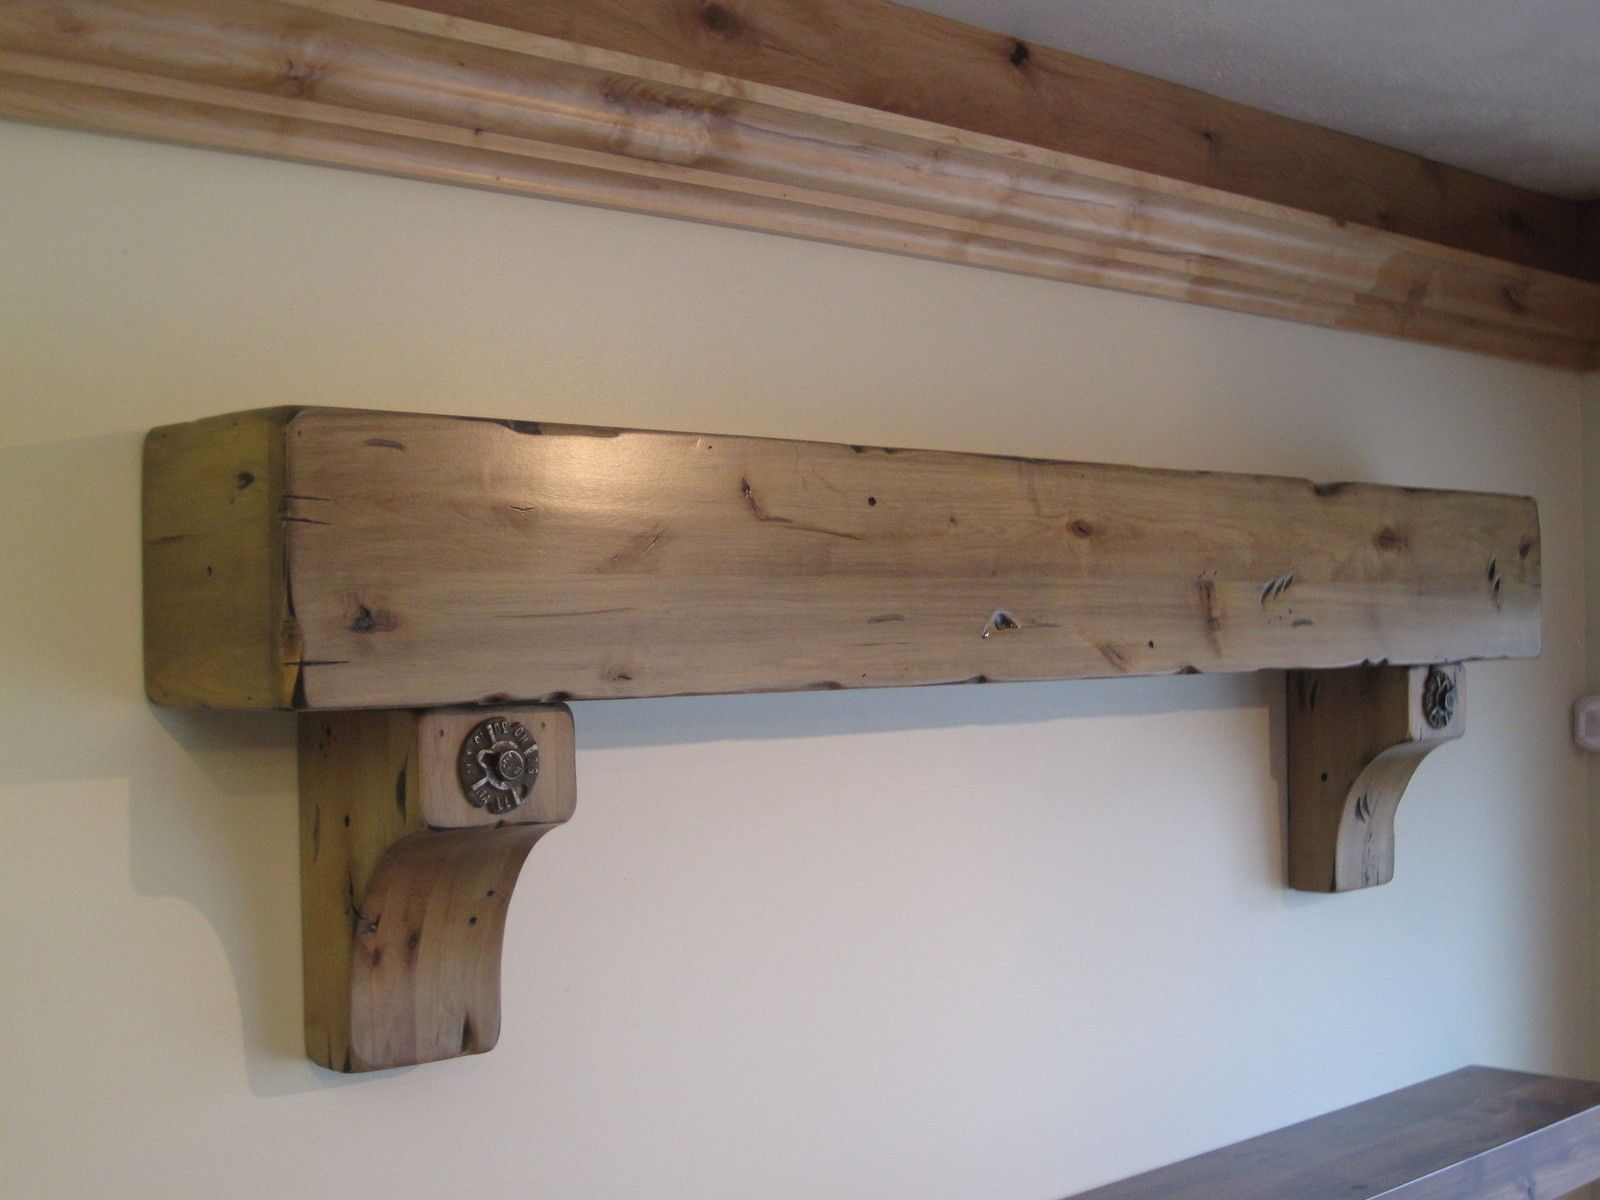 Buy A Hand Crafted Knotty Alder Fireplace Beam Mantel Rustic Distressed Antique Bolts Salvaged Timber Made To Order From Iguana Art Design